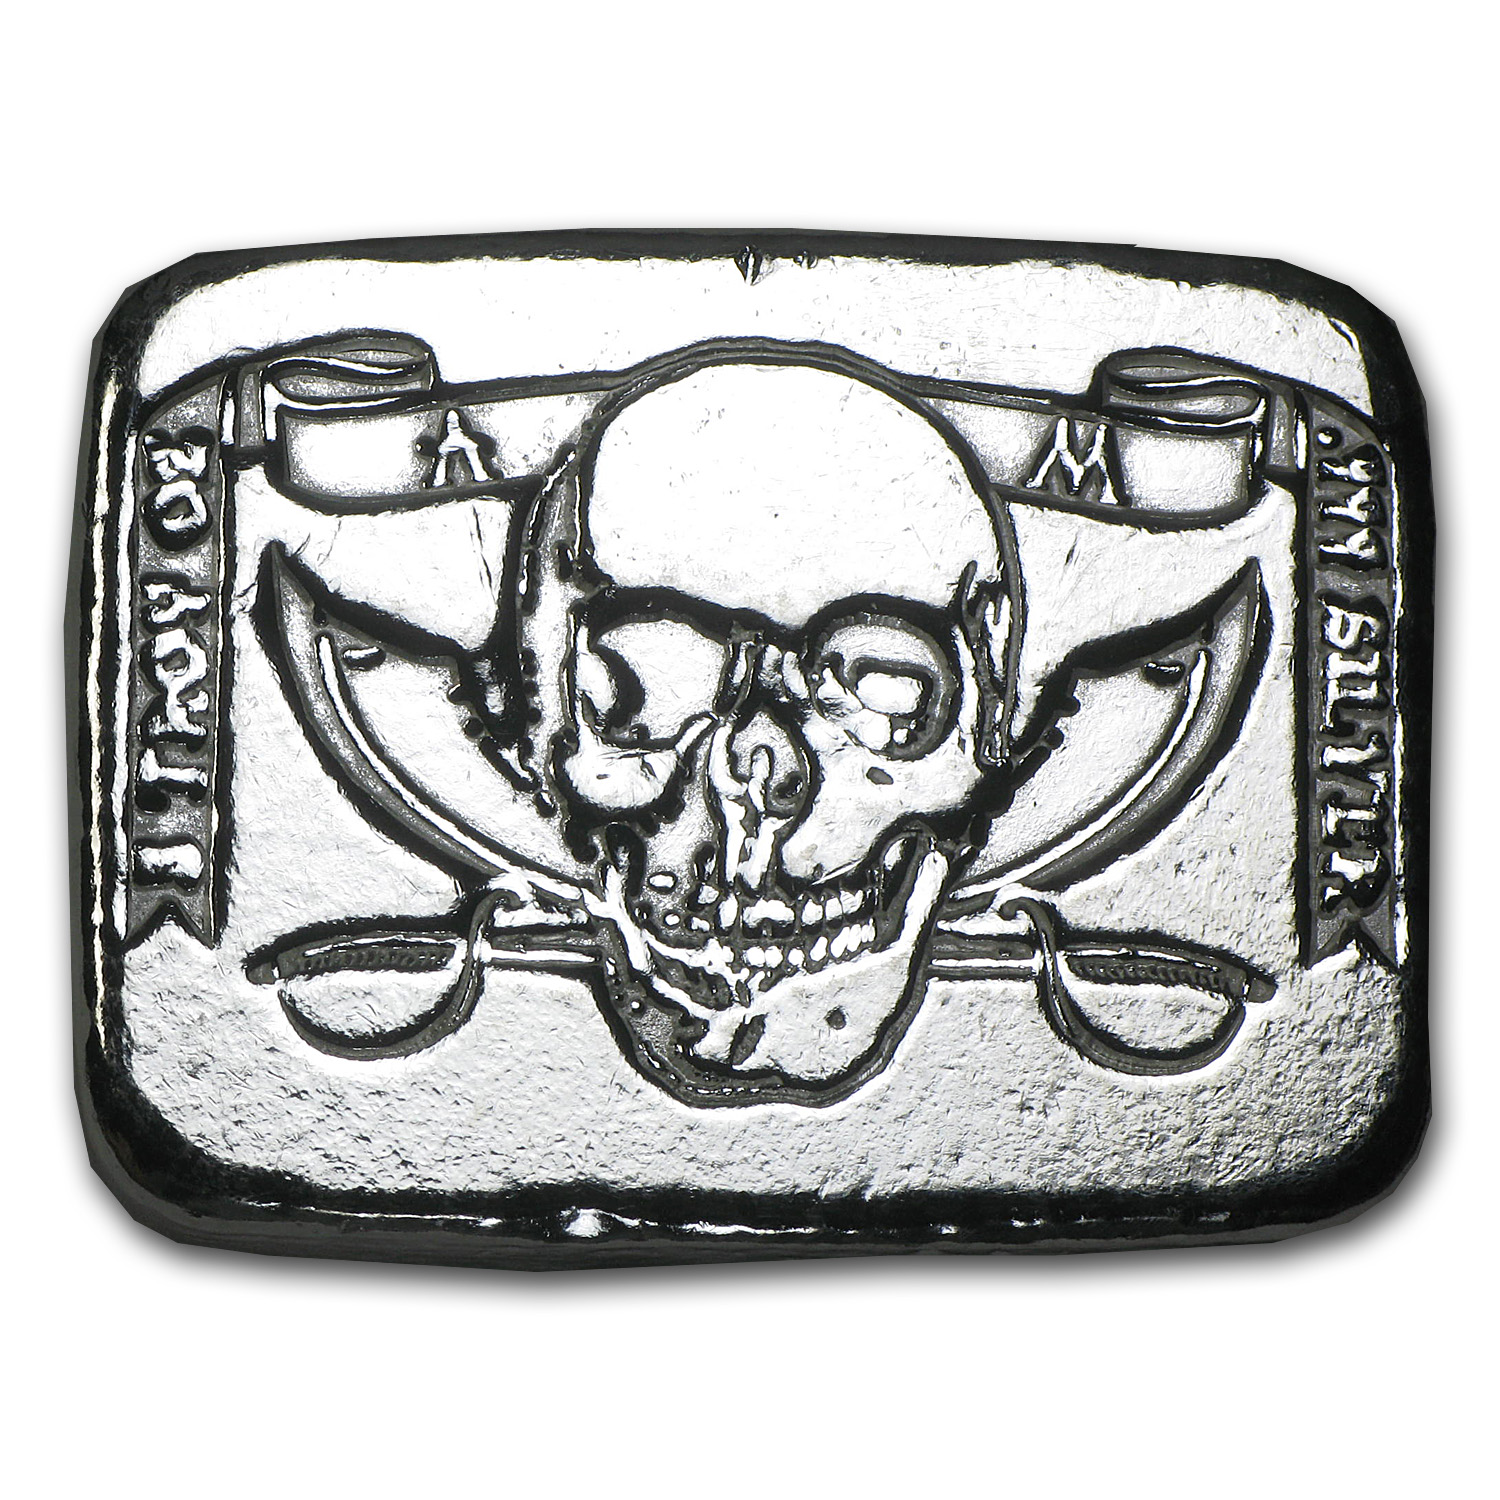 5 oz Silver Bar - Atlantis Mint (Pirate Skull & Crossed Swords)